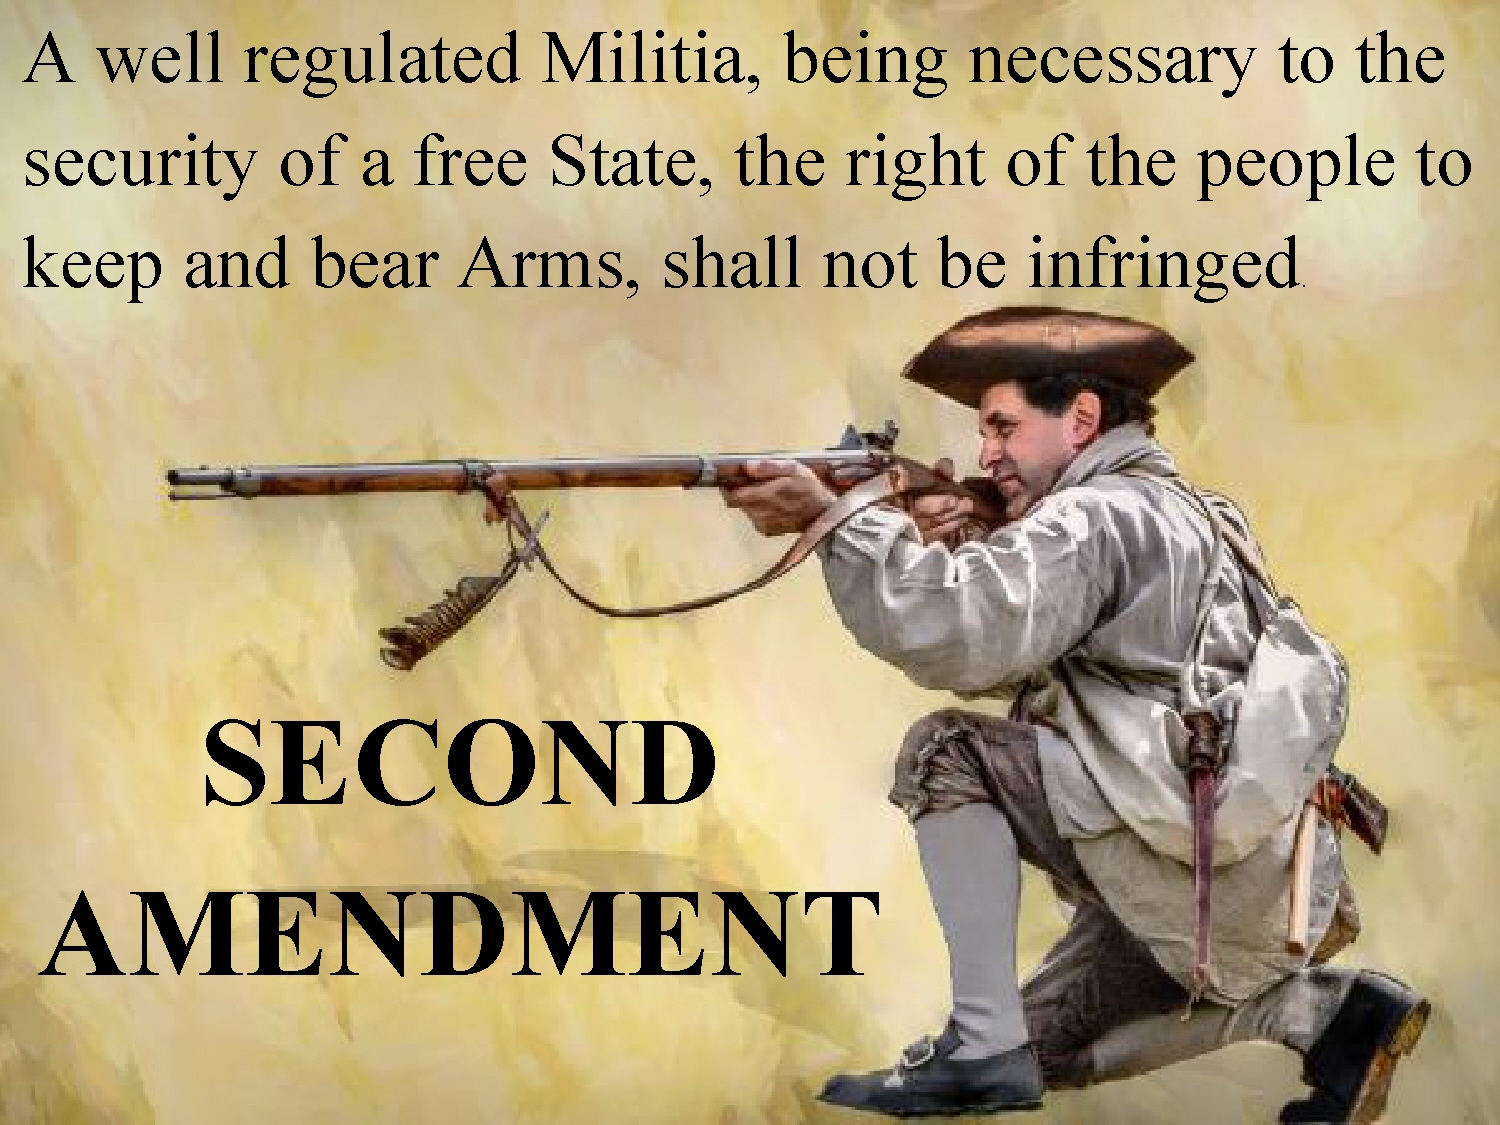 kopel: the first amendment guide to the second amendment